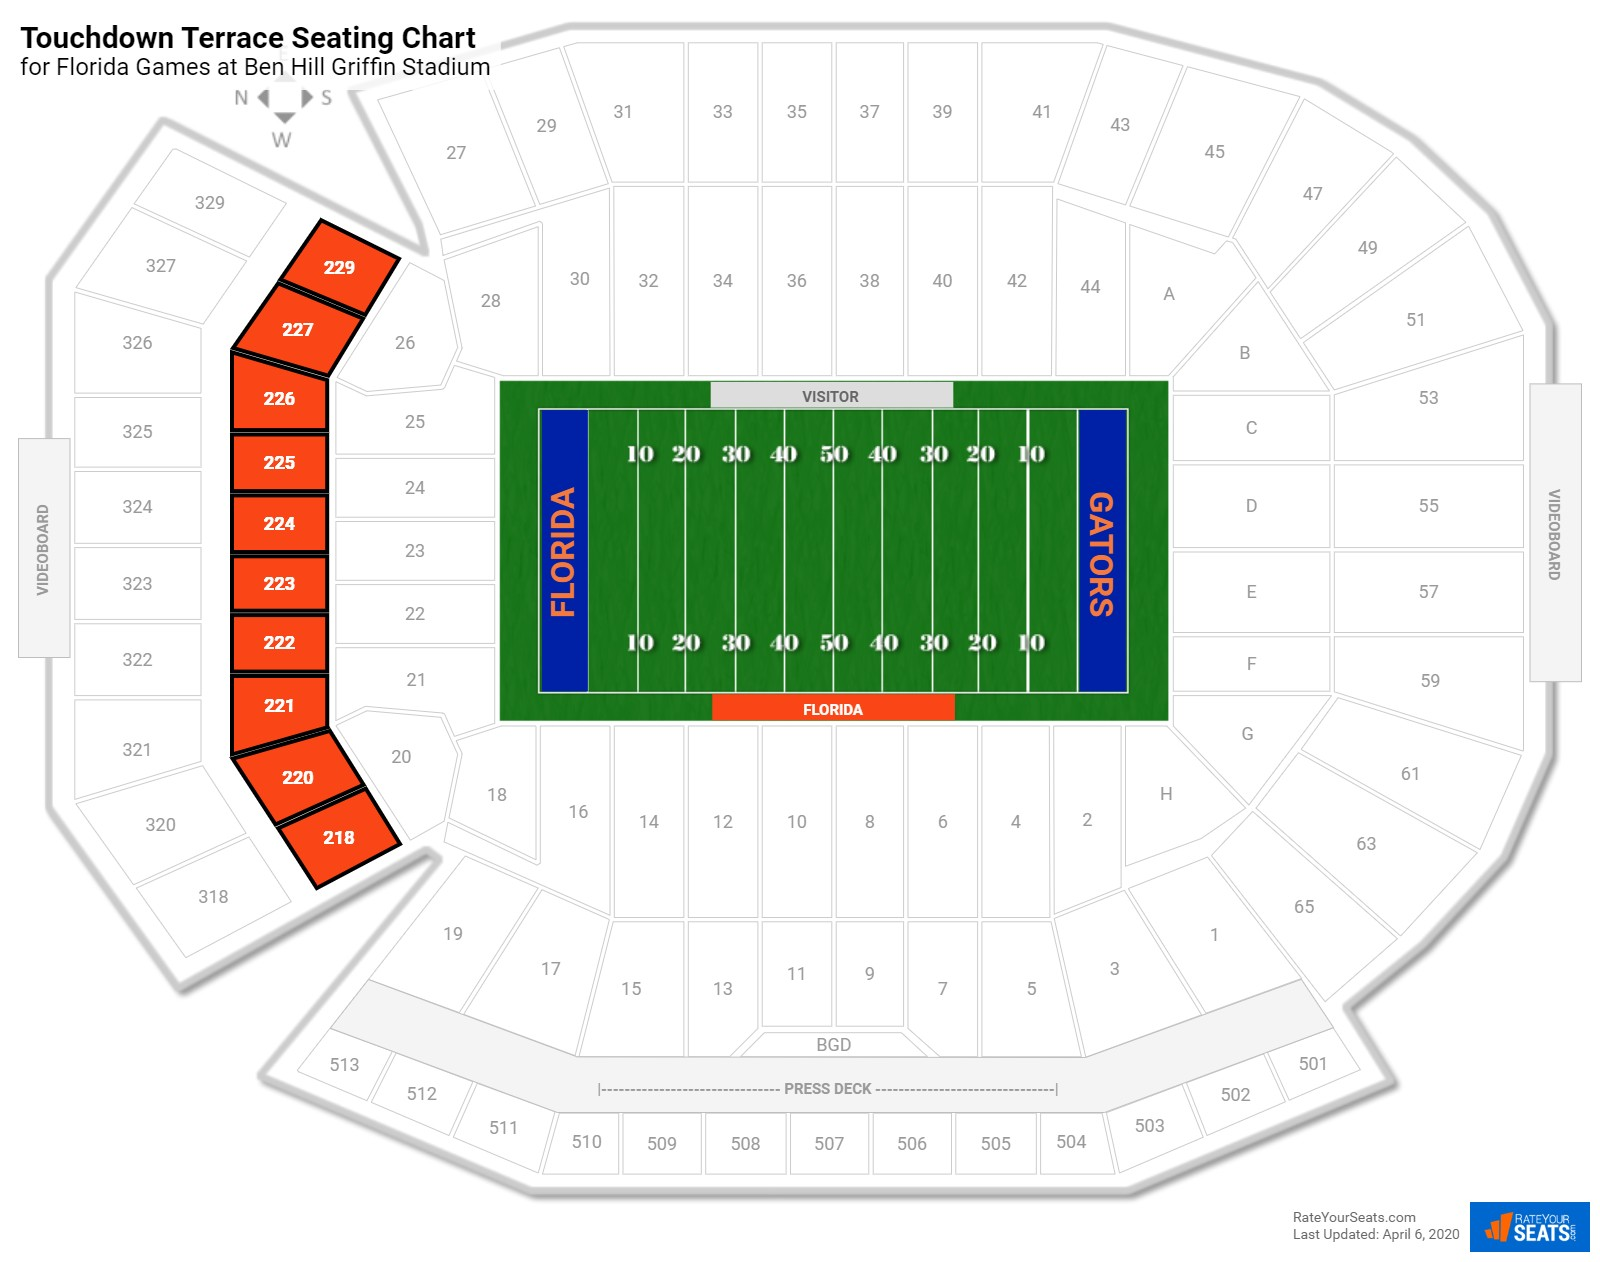 Ben Hill Griffin Stadium Touchdown Terrace seating chart